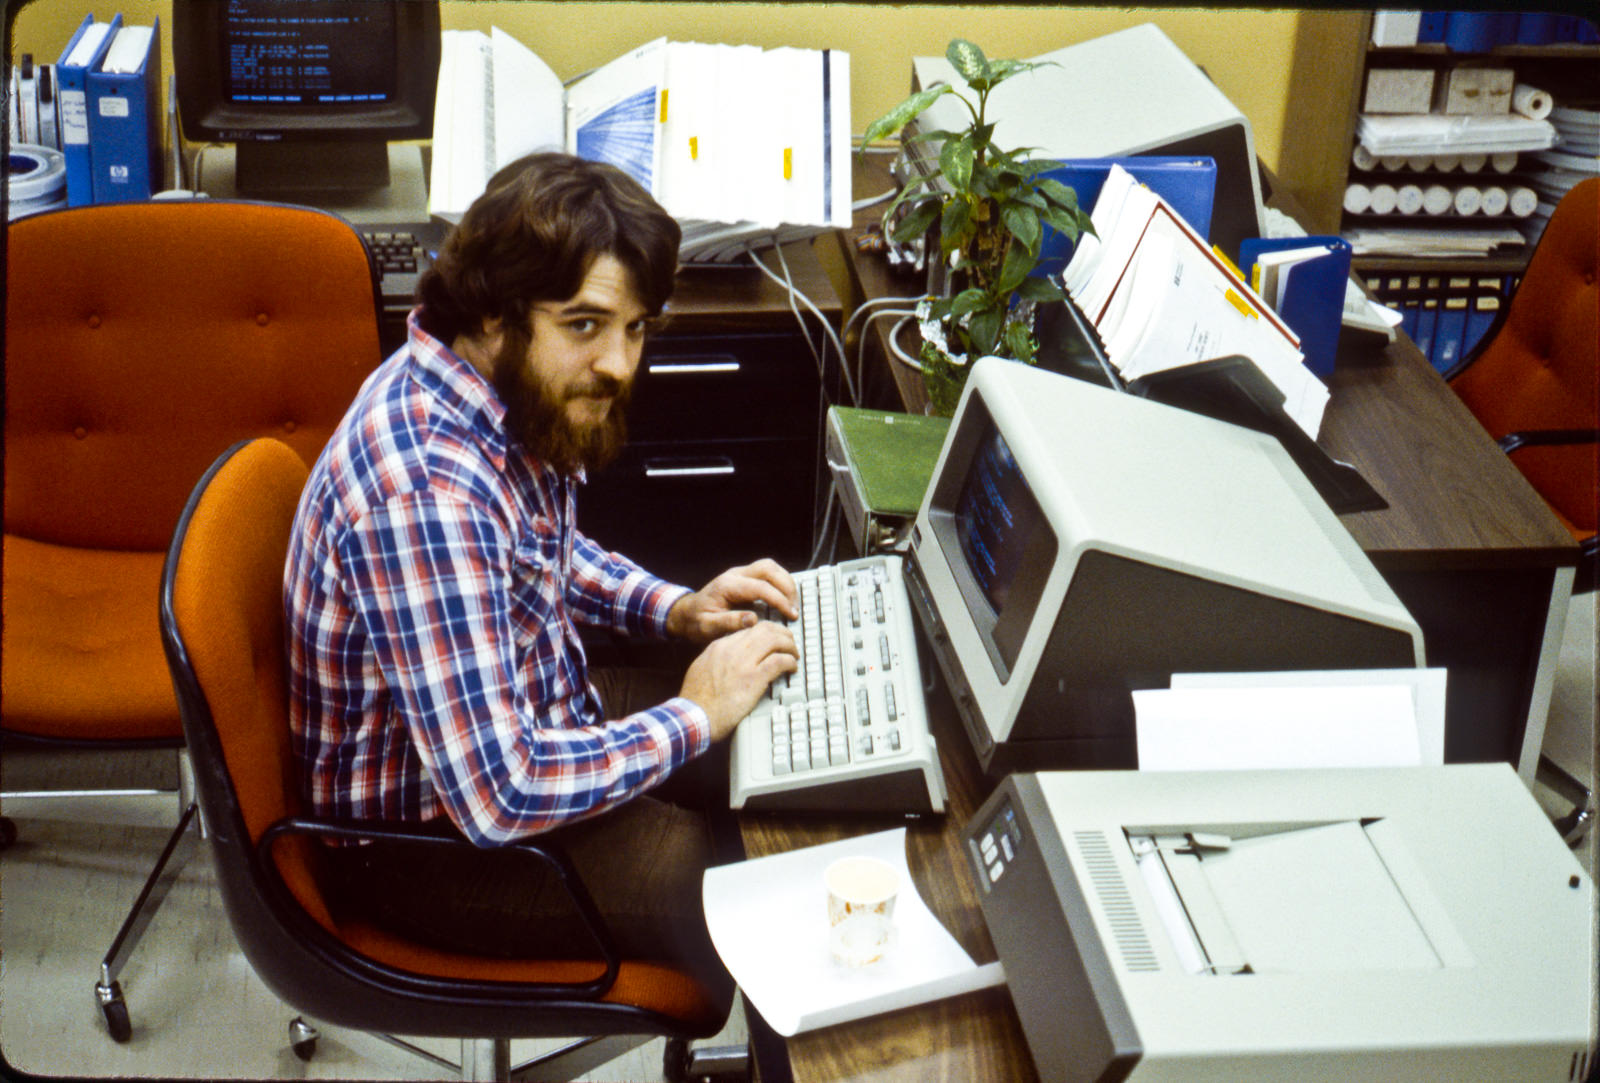 Mike at work